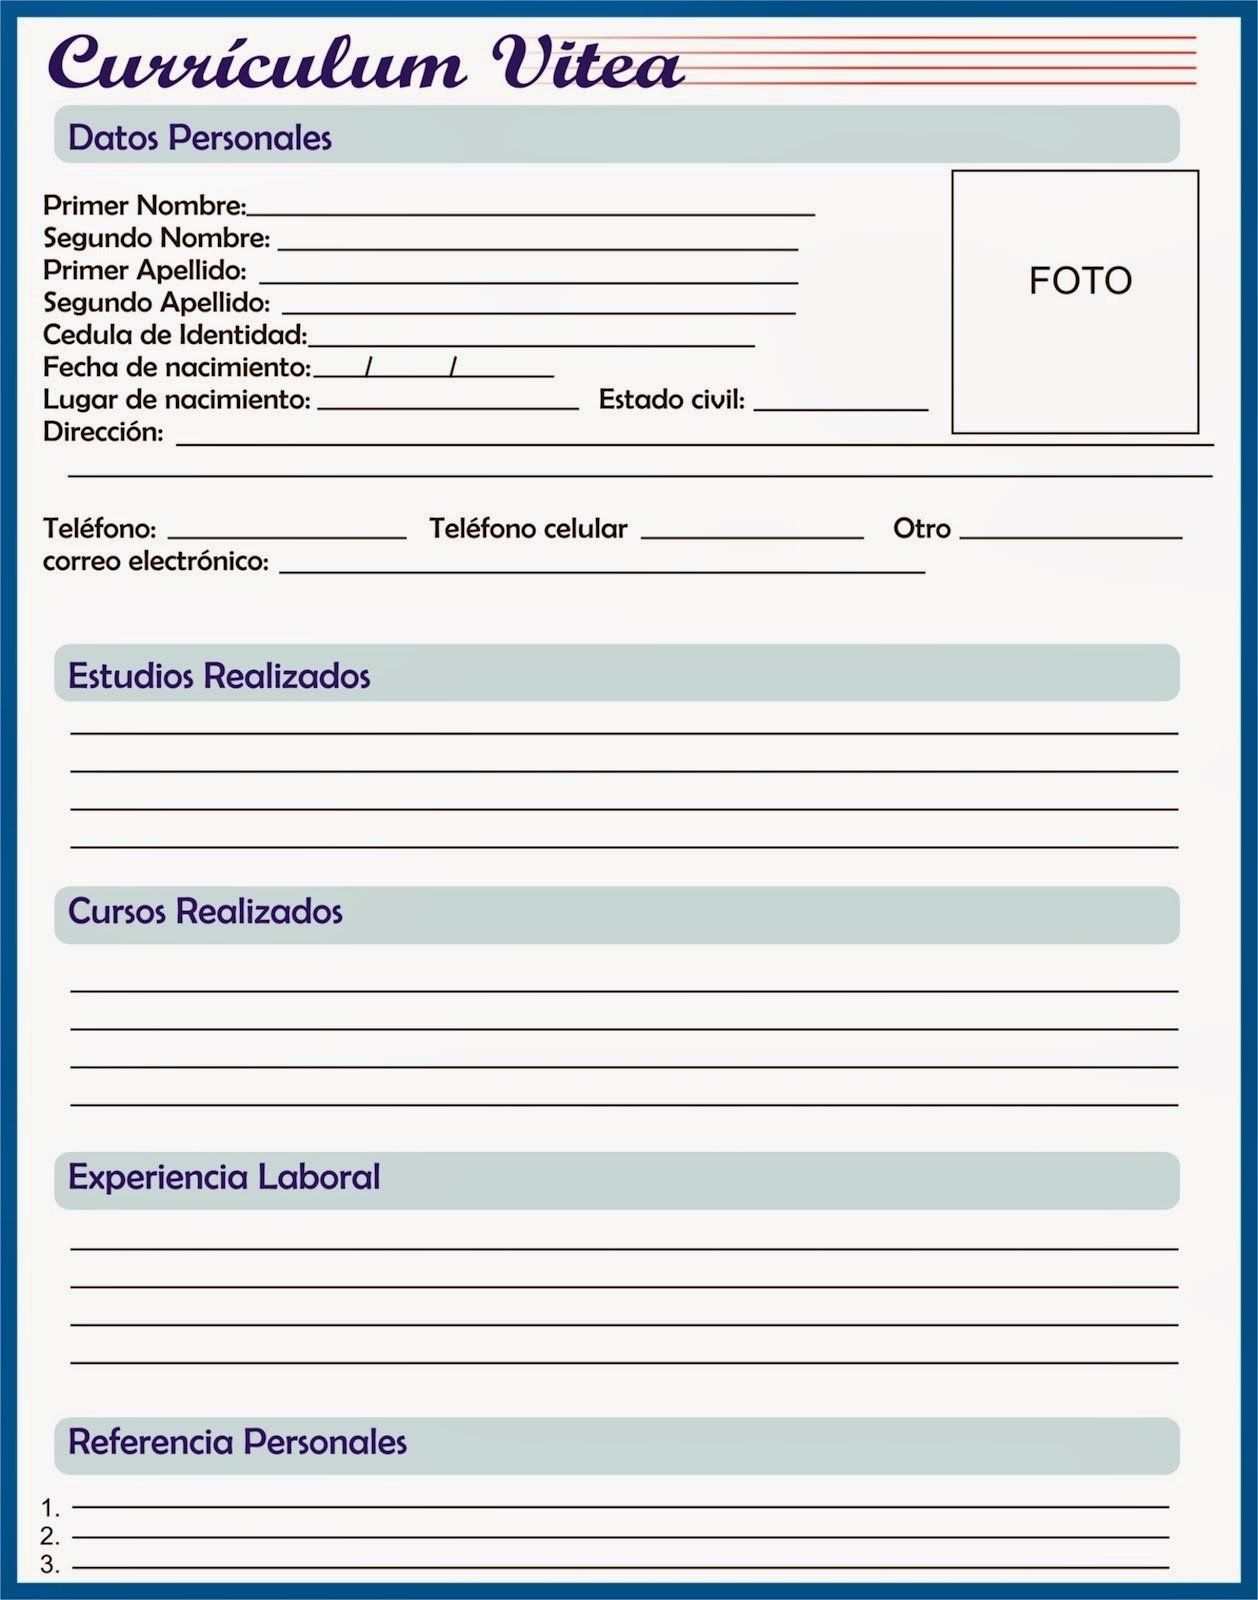 Curriculum Vitae Download Basico